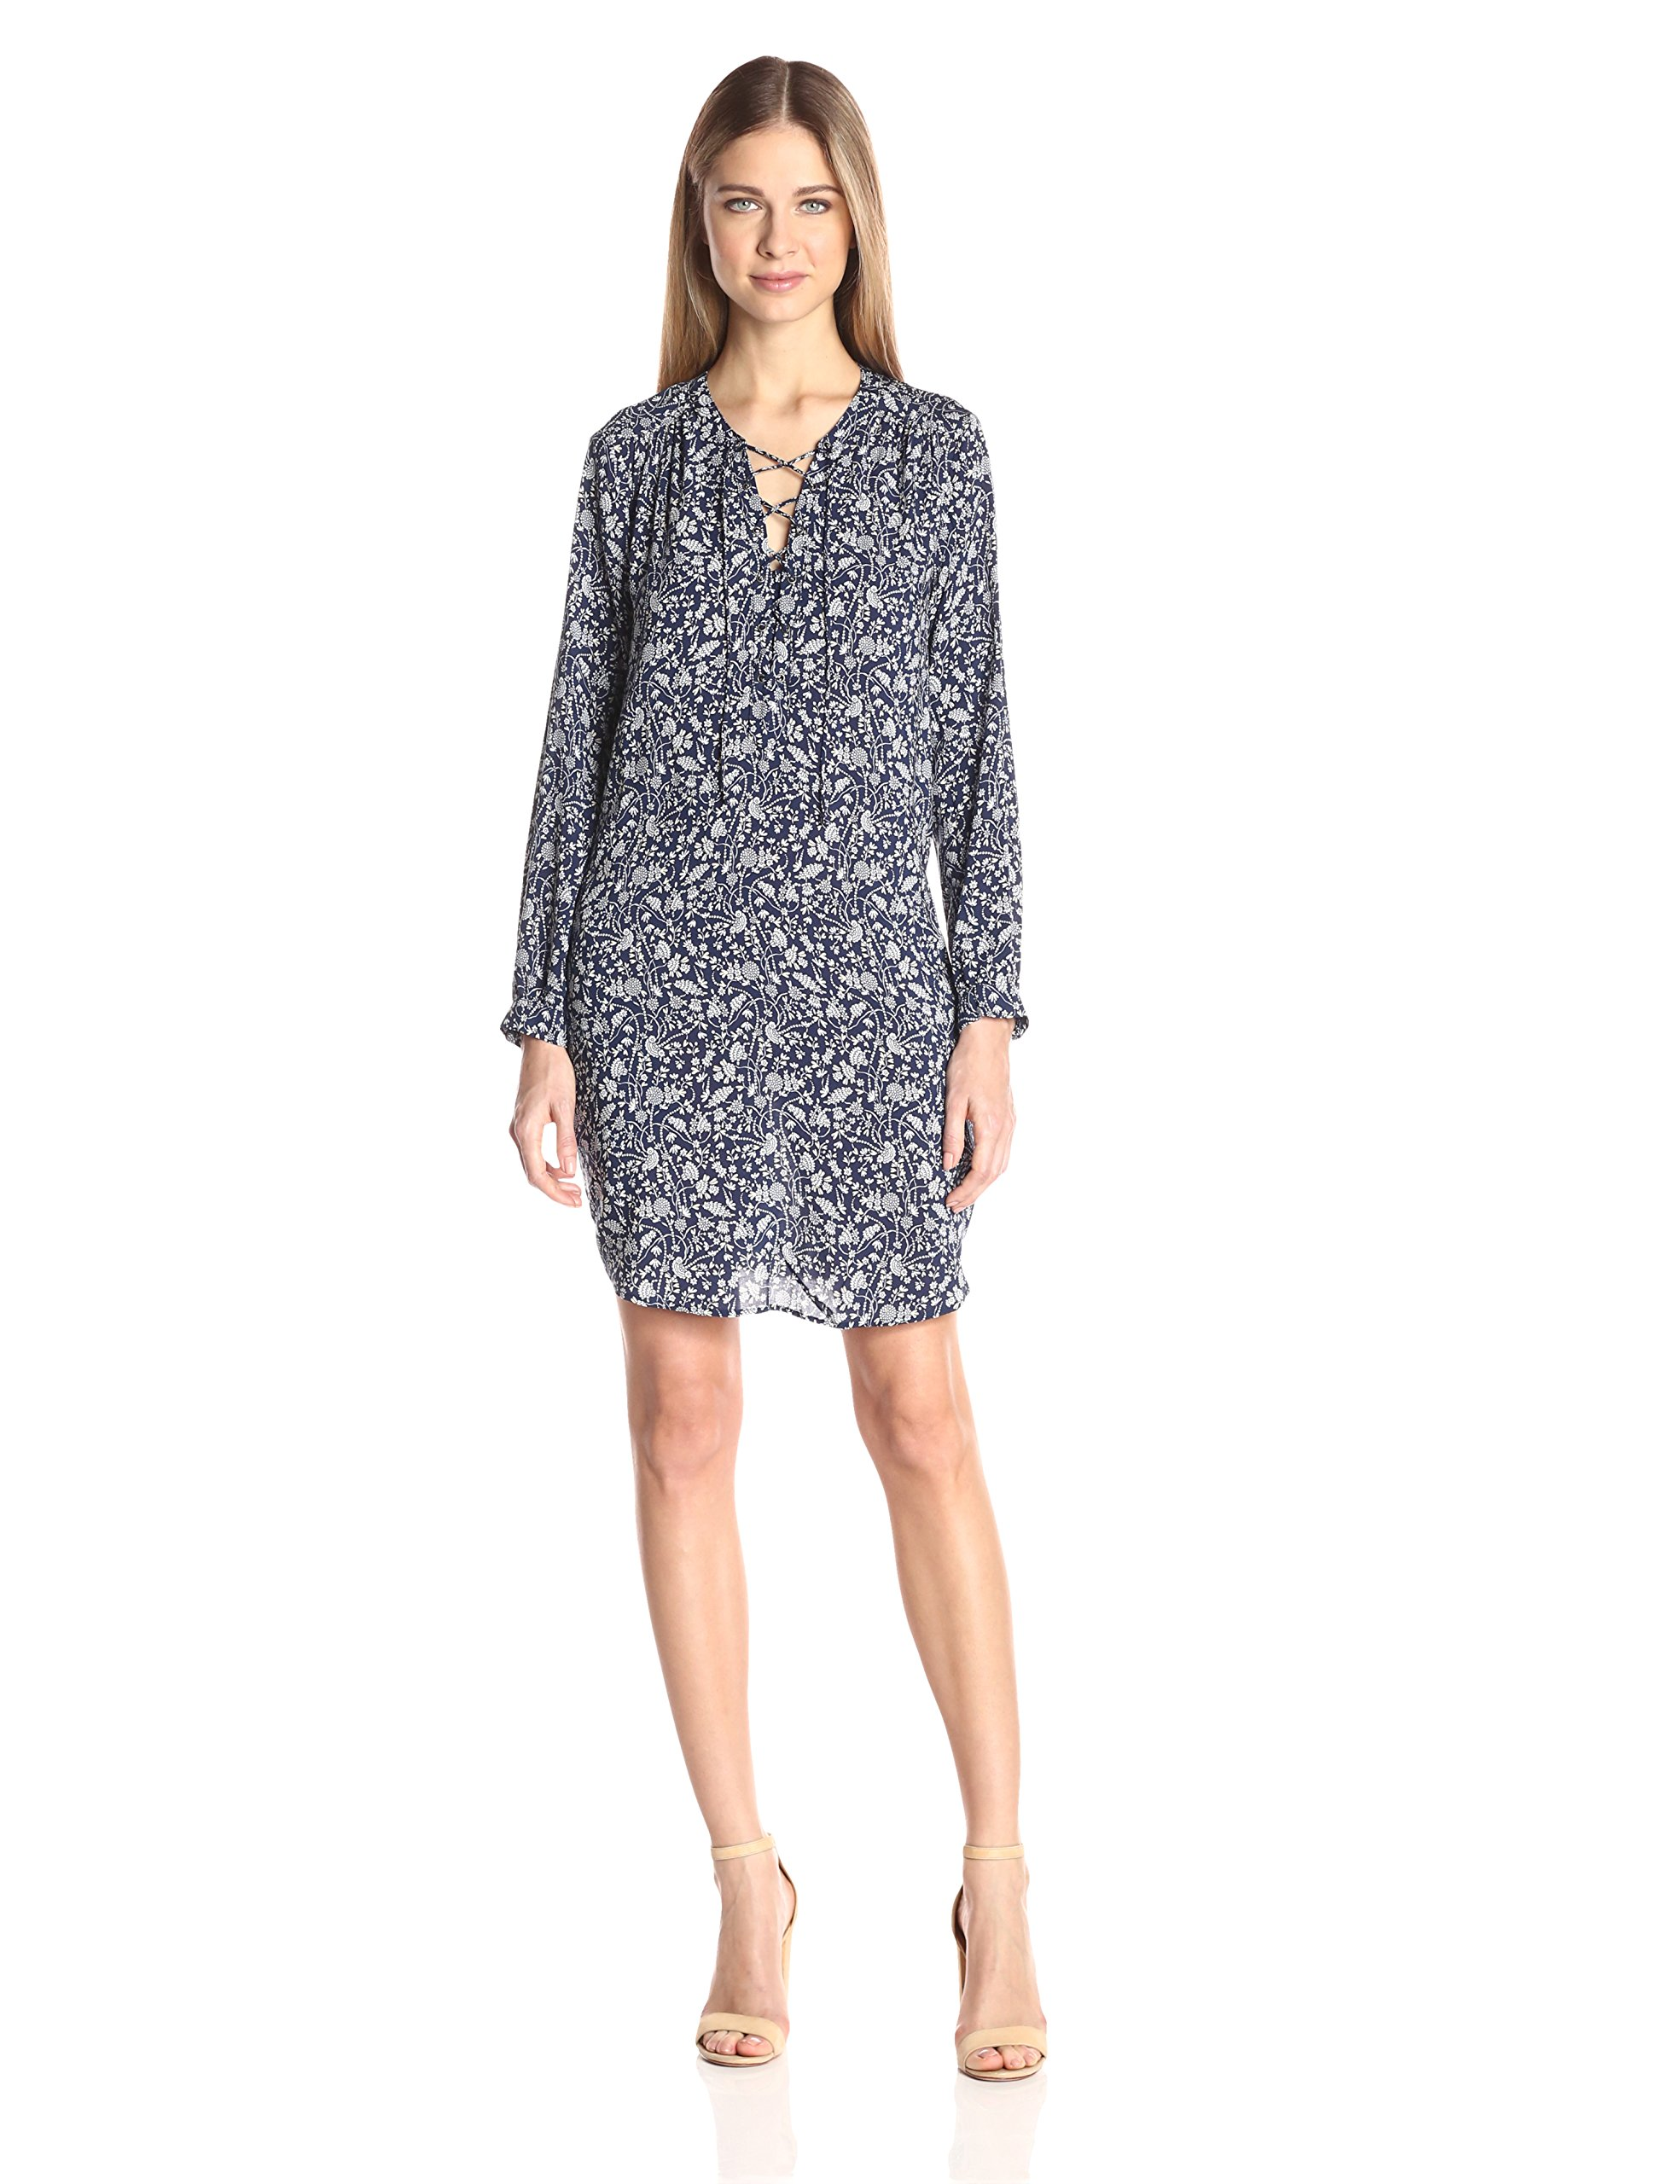 VELVET BY GRAHAM & SPENCER Women's Printed Challis Laceup Dress, Blue Begonia, S